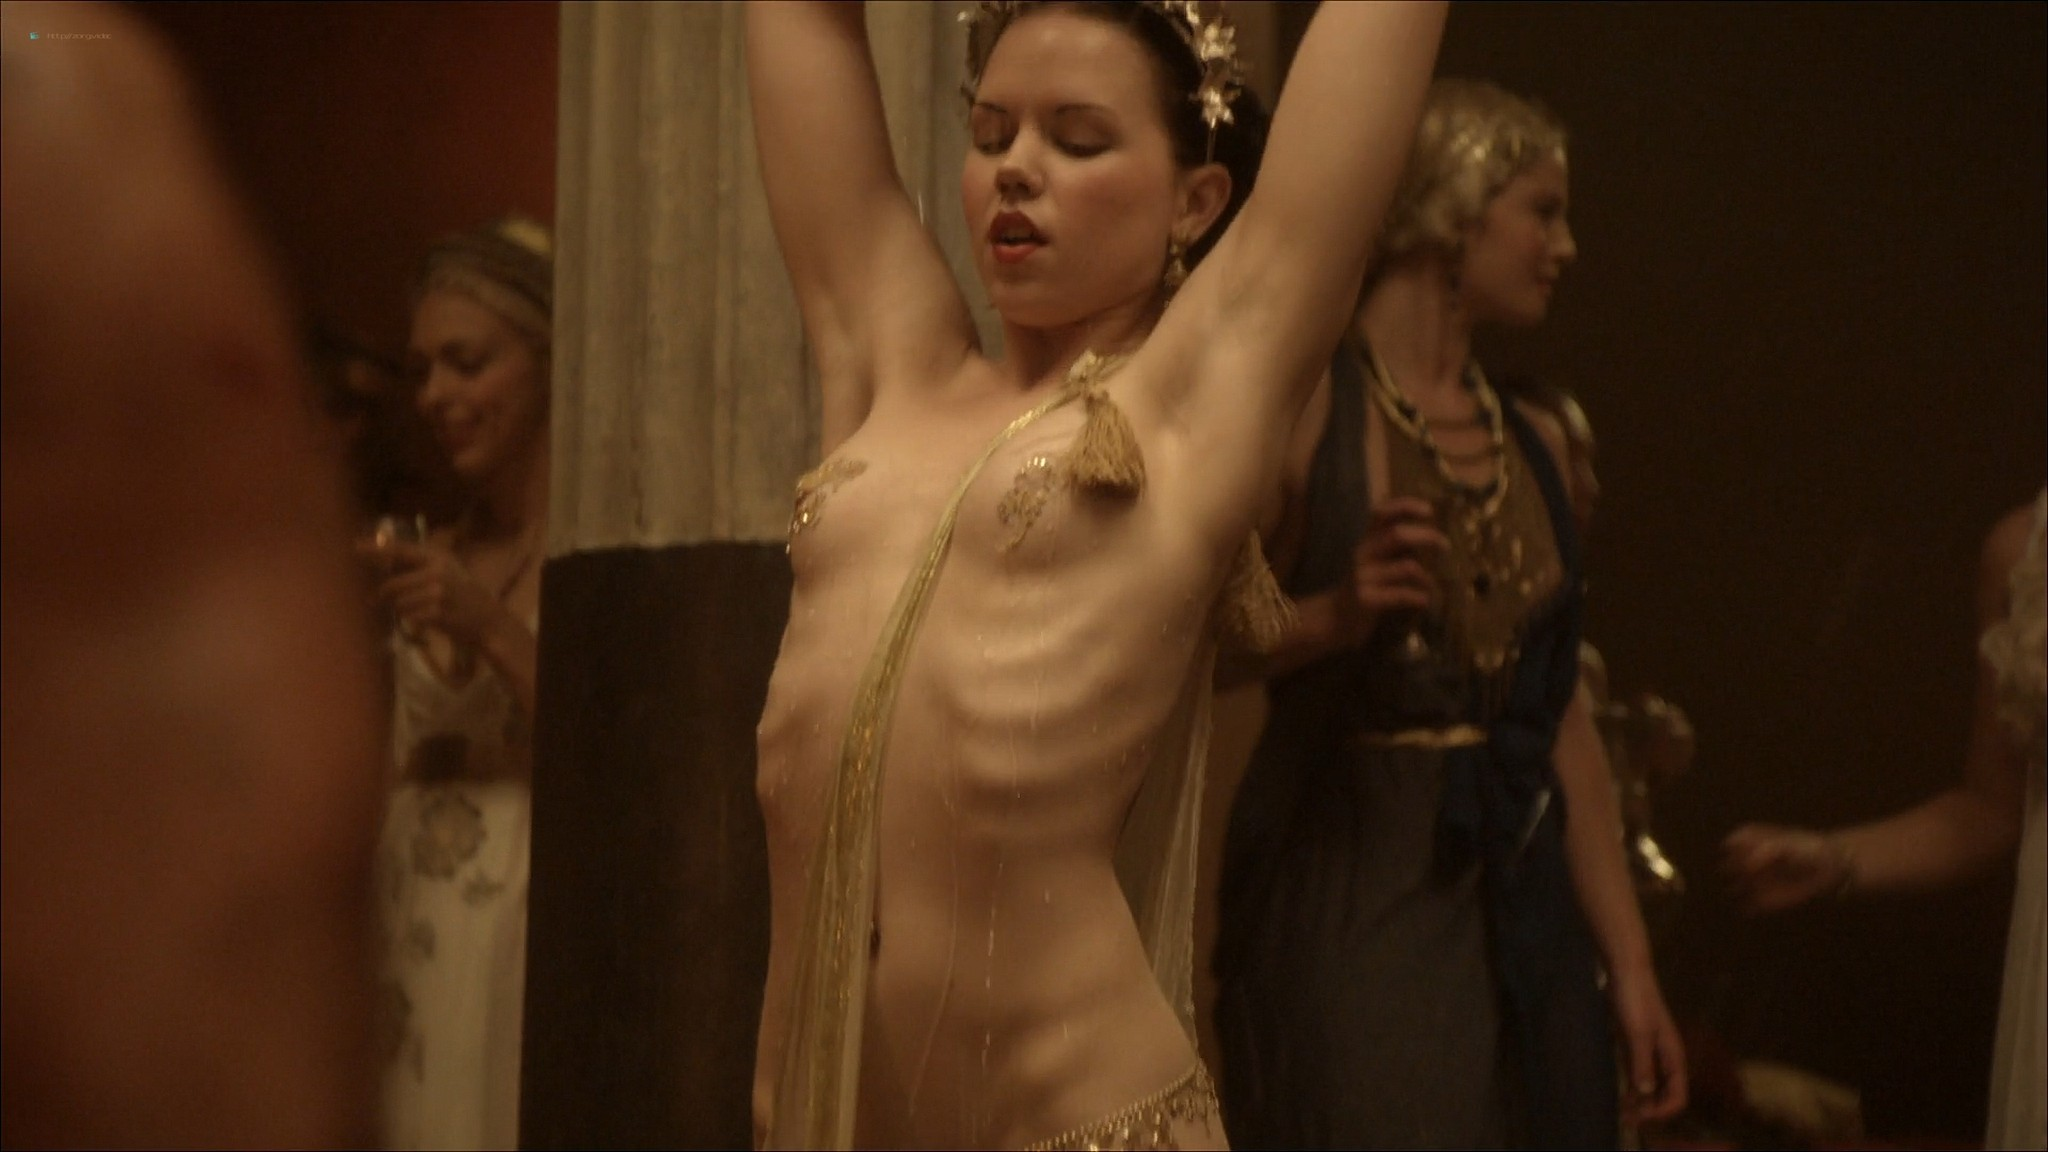 Viva Bianca nude full frontal Erin Cummings and others nude - Spartacus -The Red Serpent (2010) HD 1080p BluRay (4)